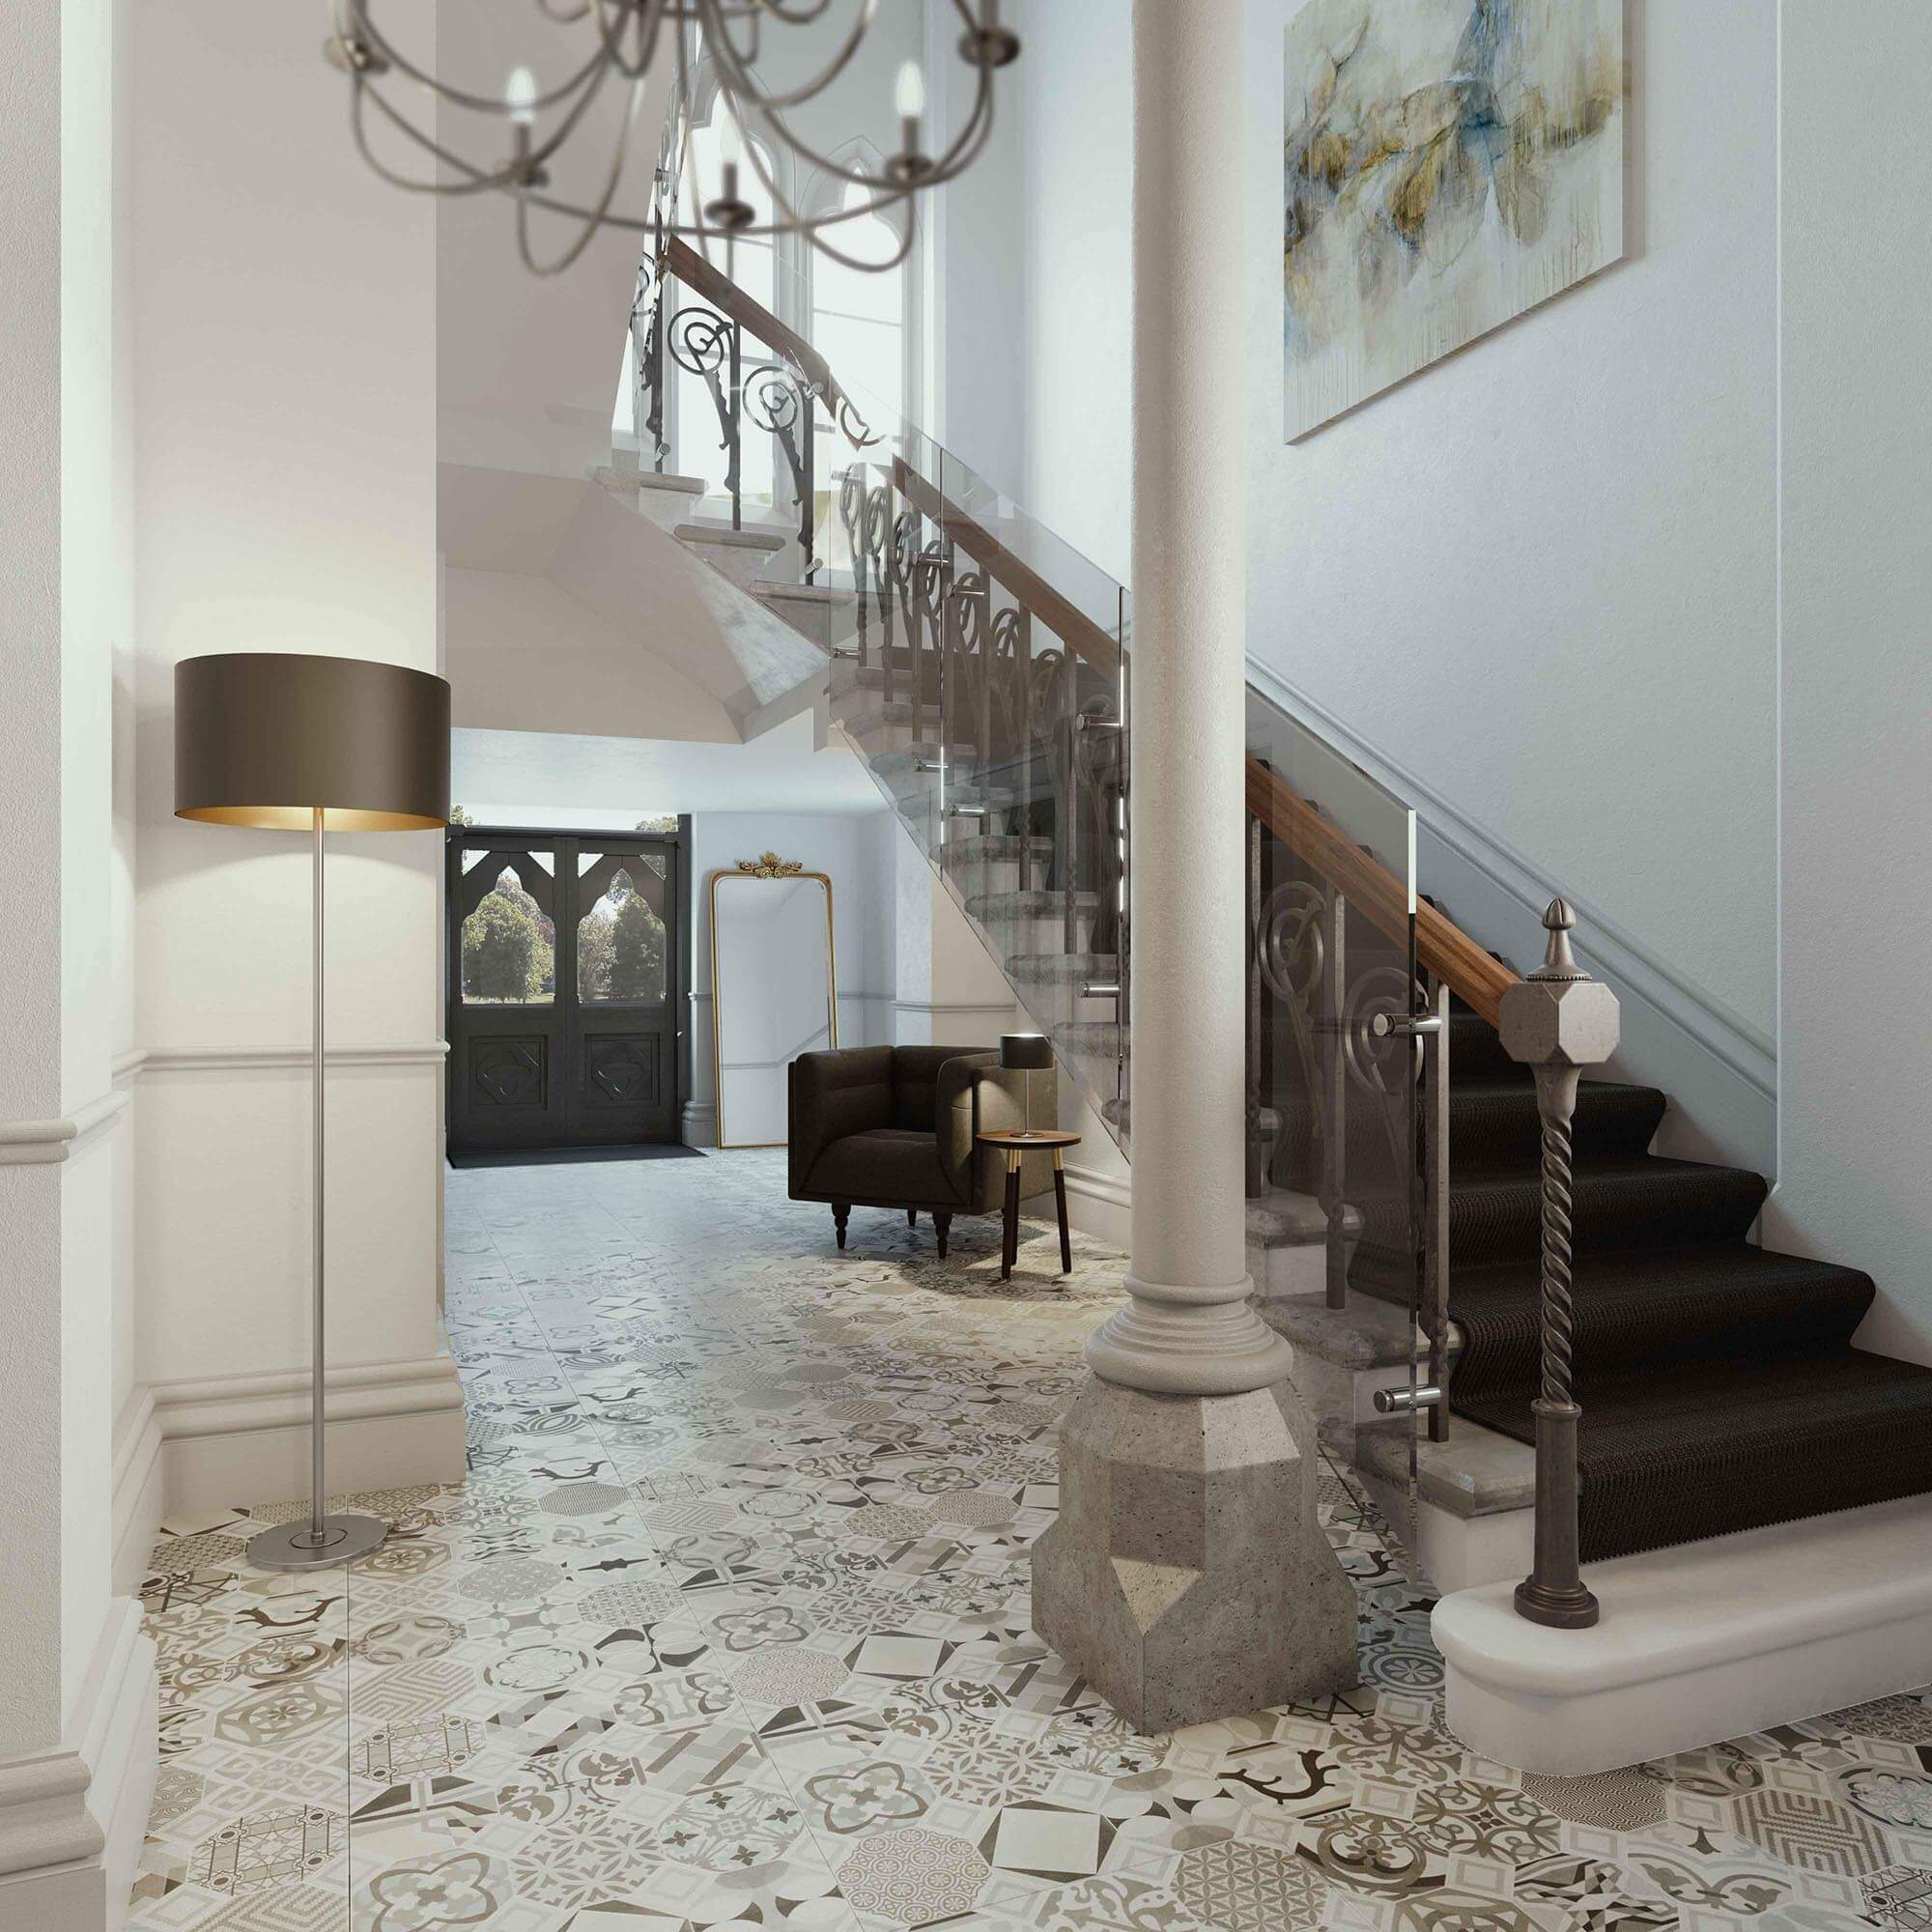 WHITE CROW STUDIOS - COURT COLLABORATION ROYAL SUTTON PLACE - ENTRANCE STAIRCASE CGI